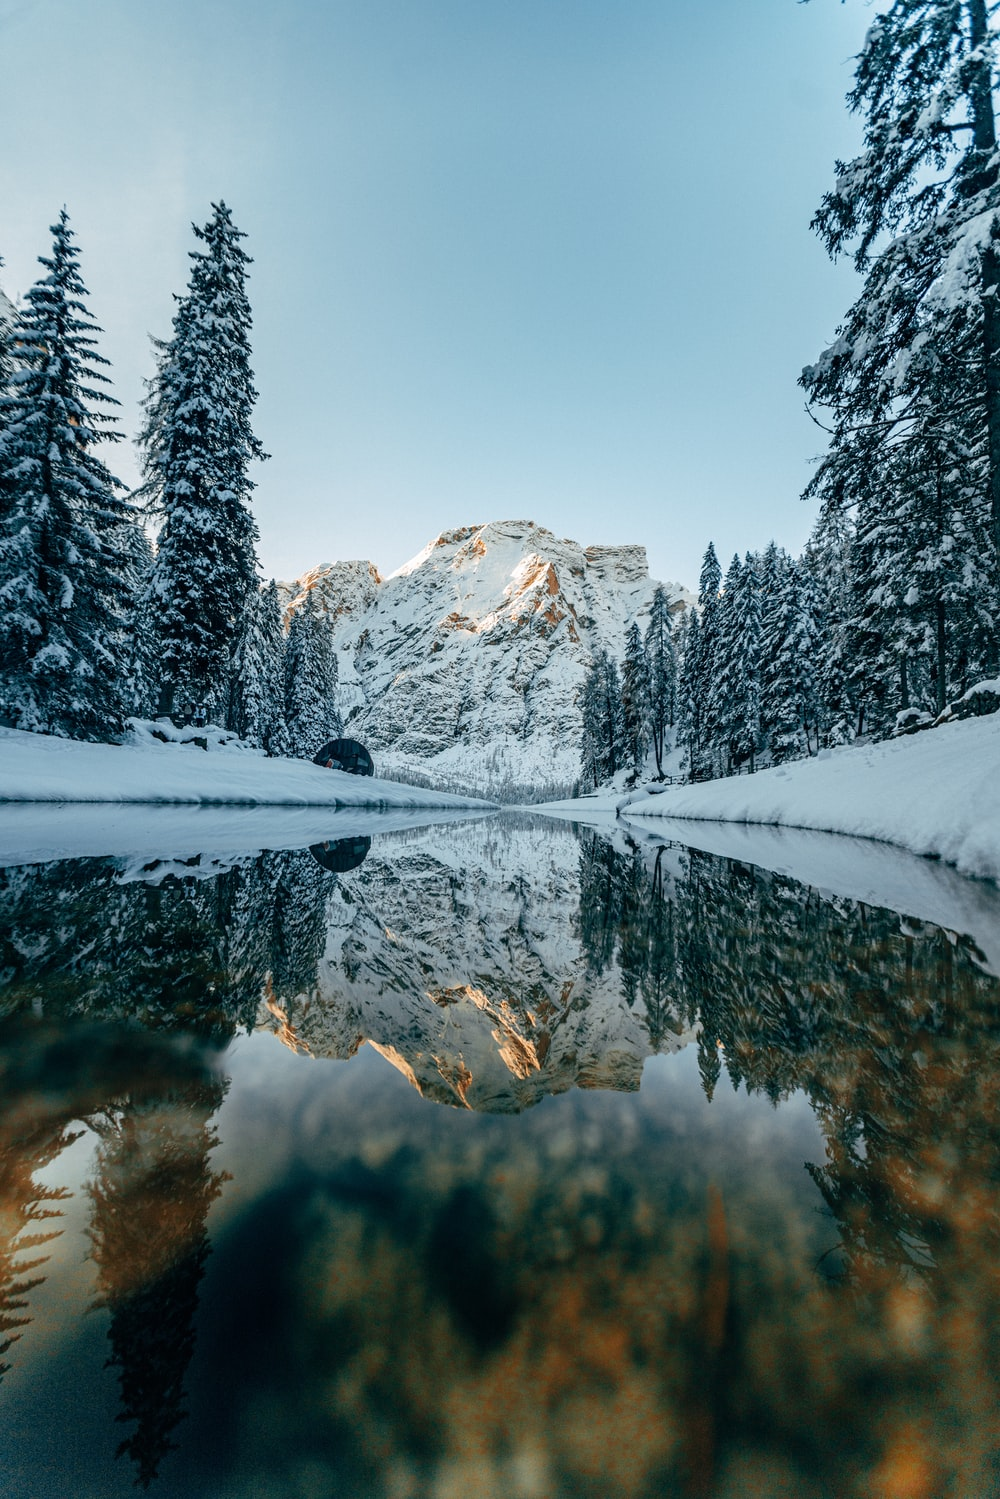 river surrounded by trees covered with snow